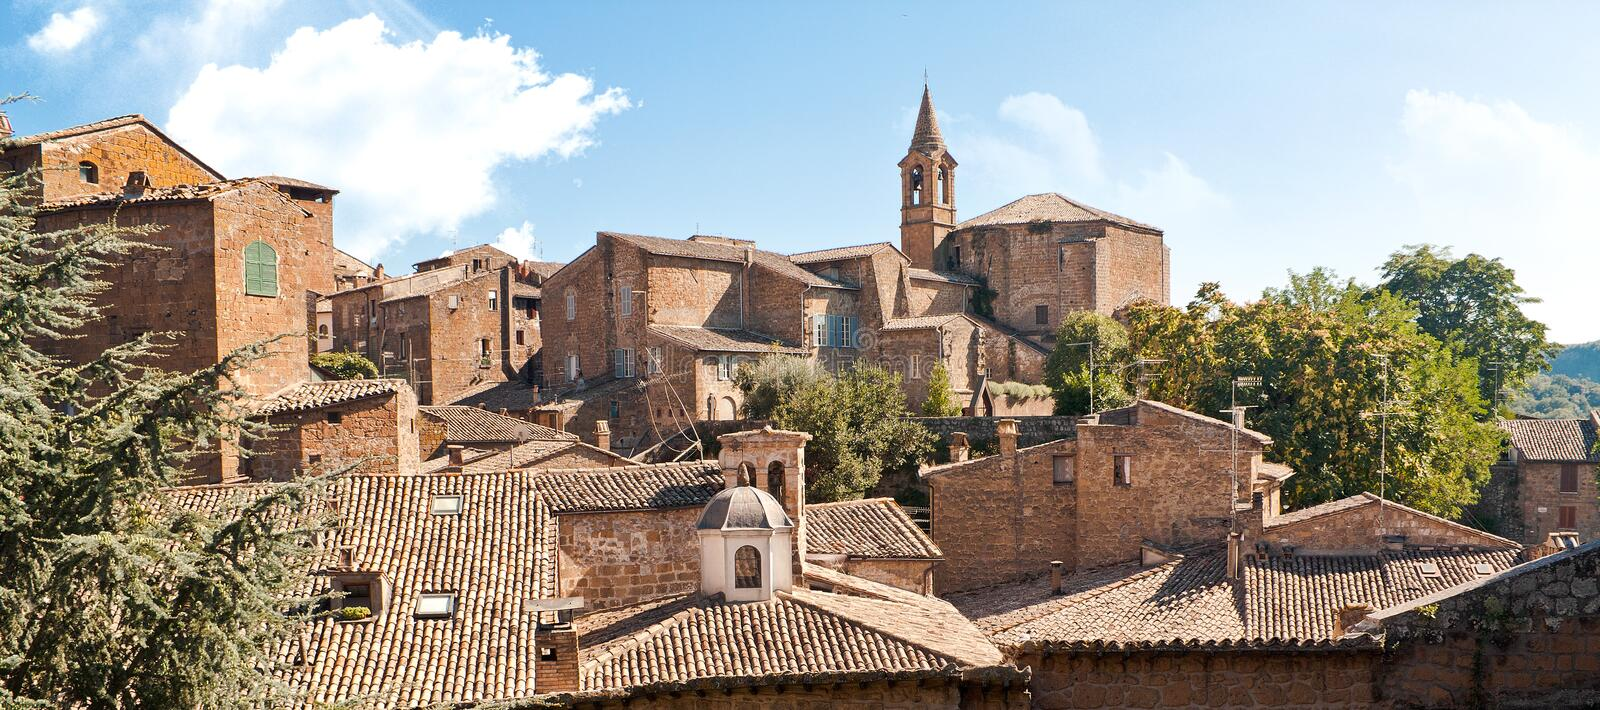 Download Italian Town stock image. Image of houses, roof, scenery - 15849529